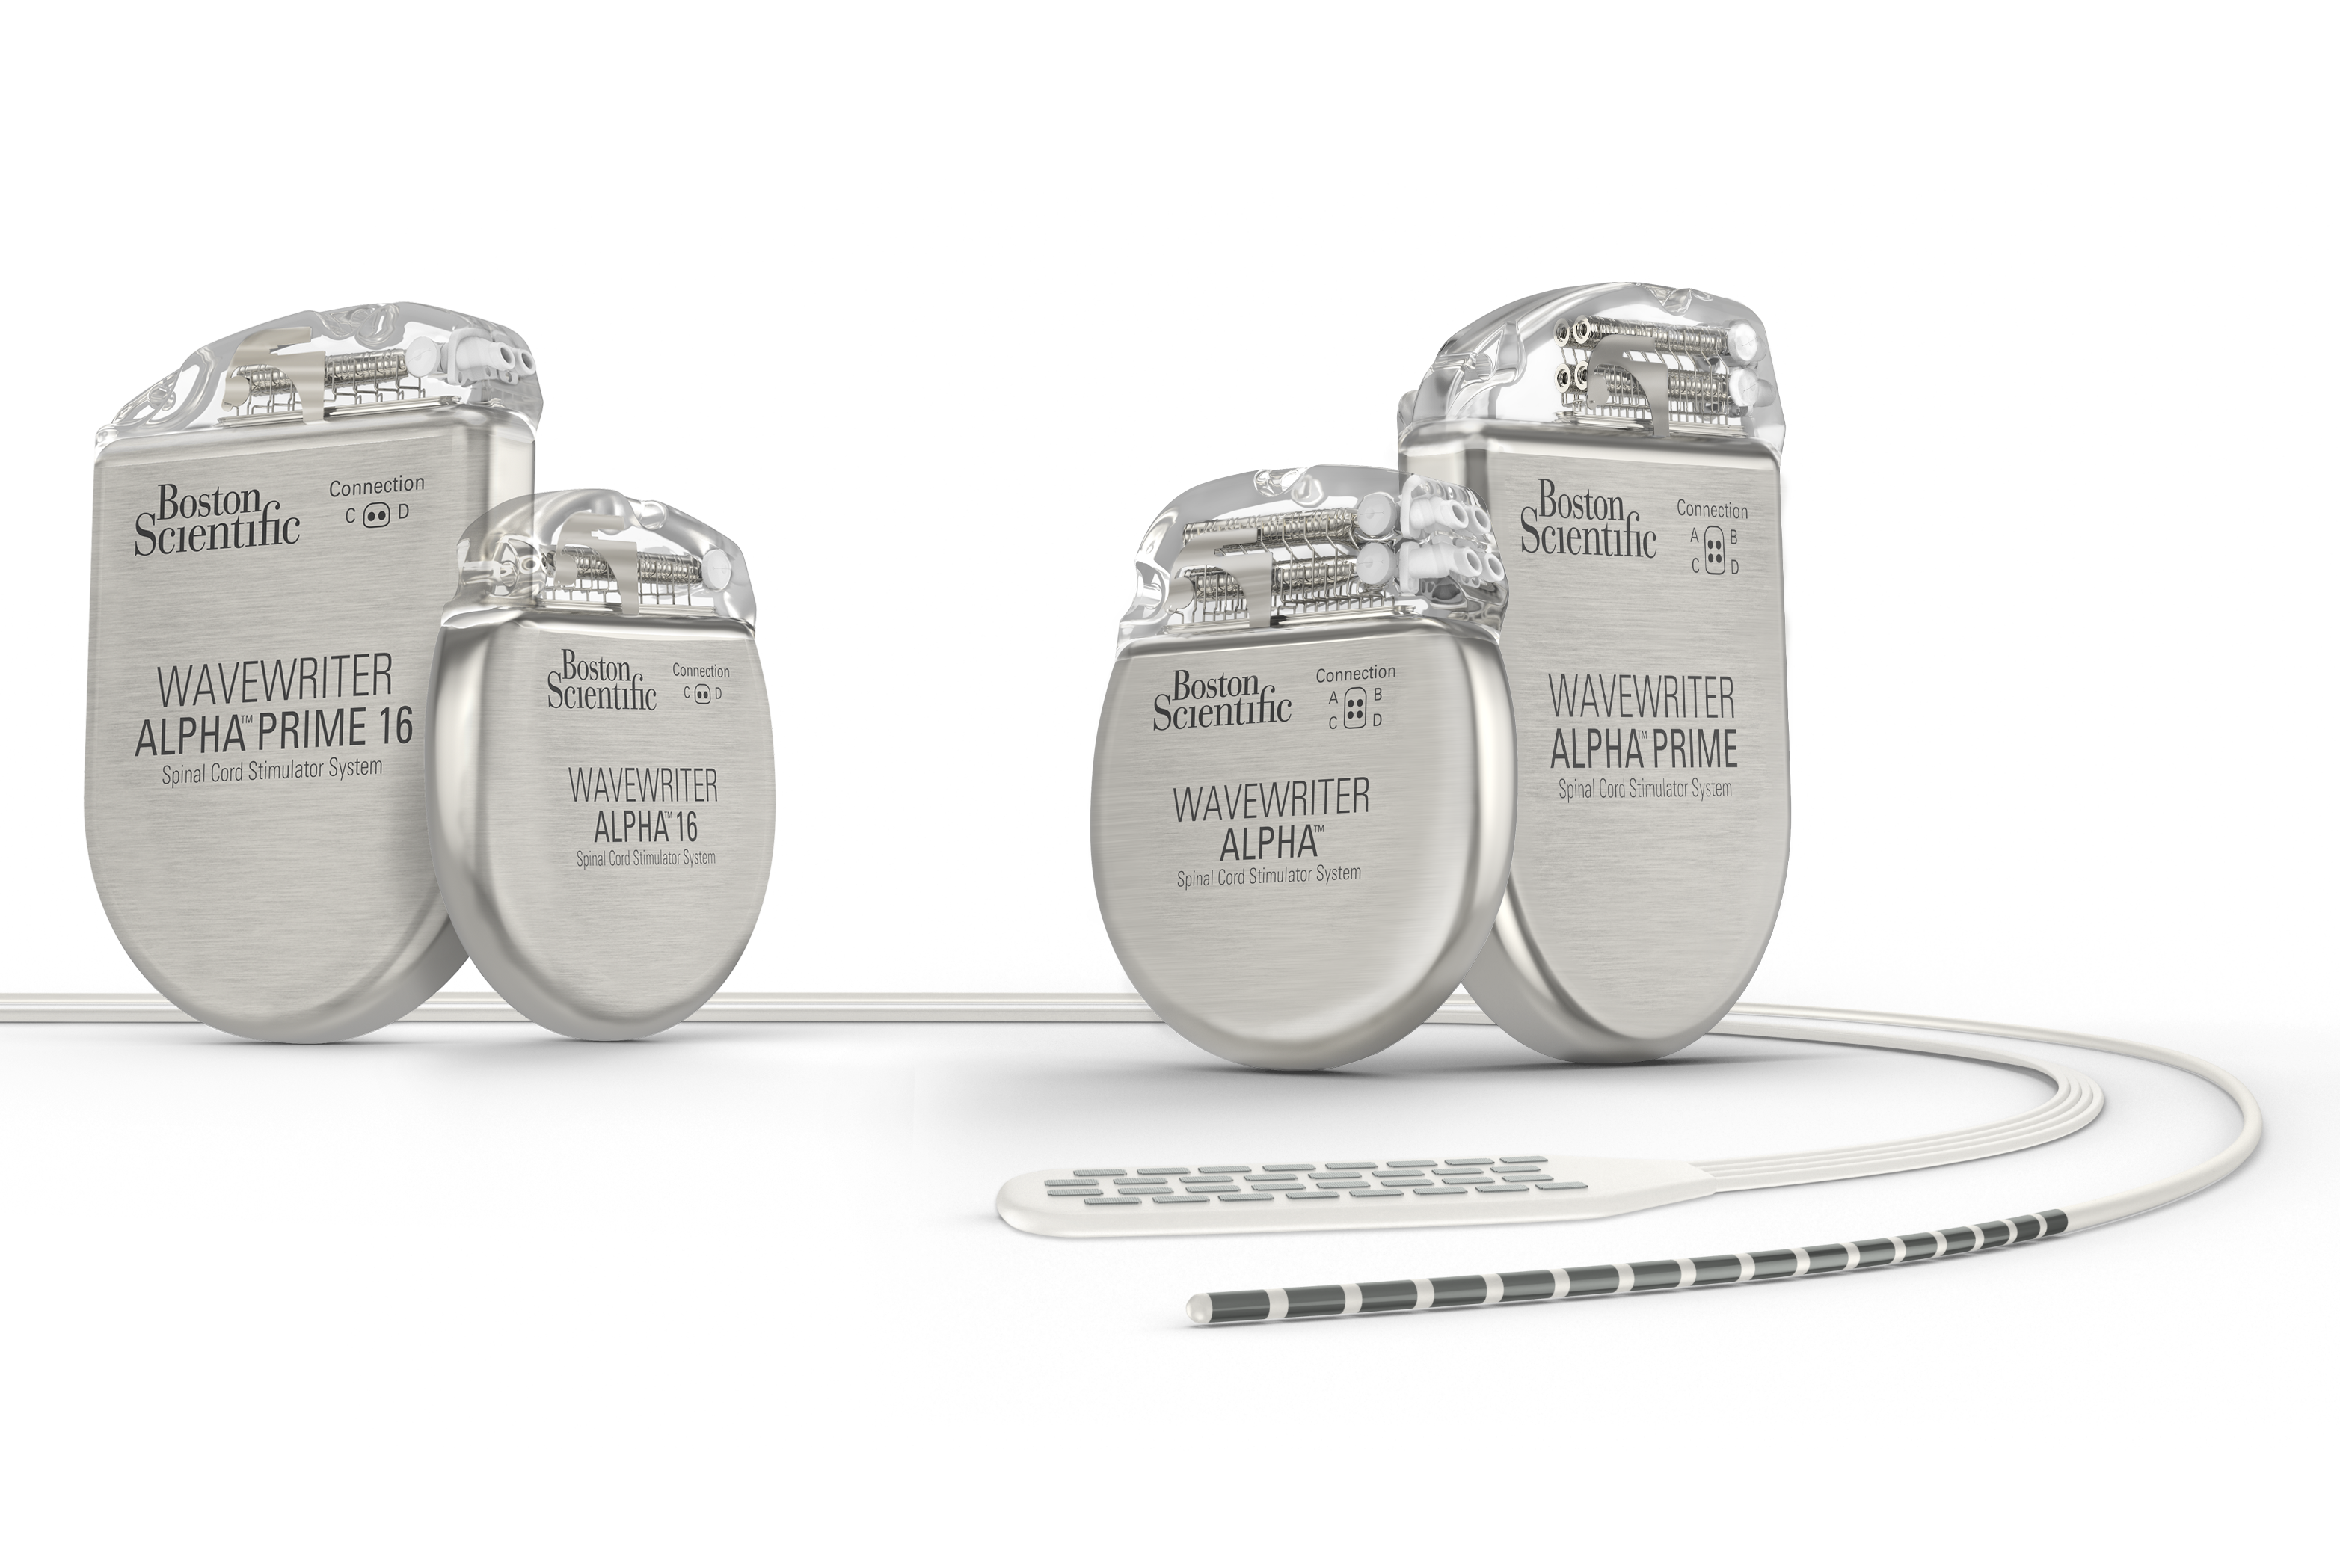 Four WaveWriter Alpha spinal cord stimulator systems